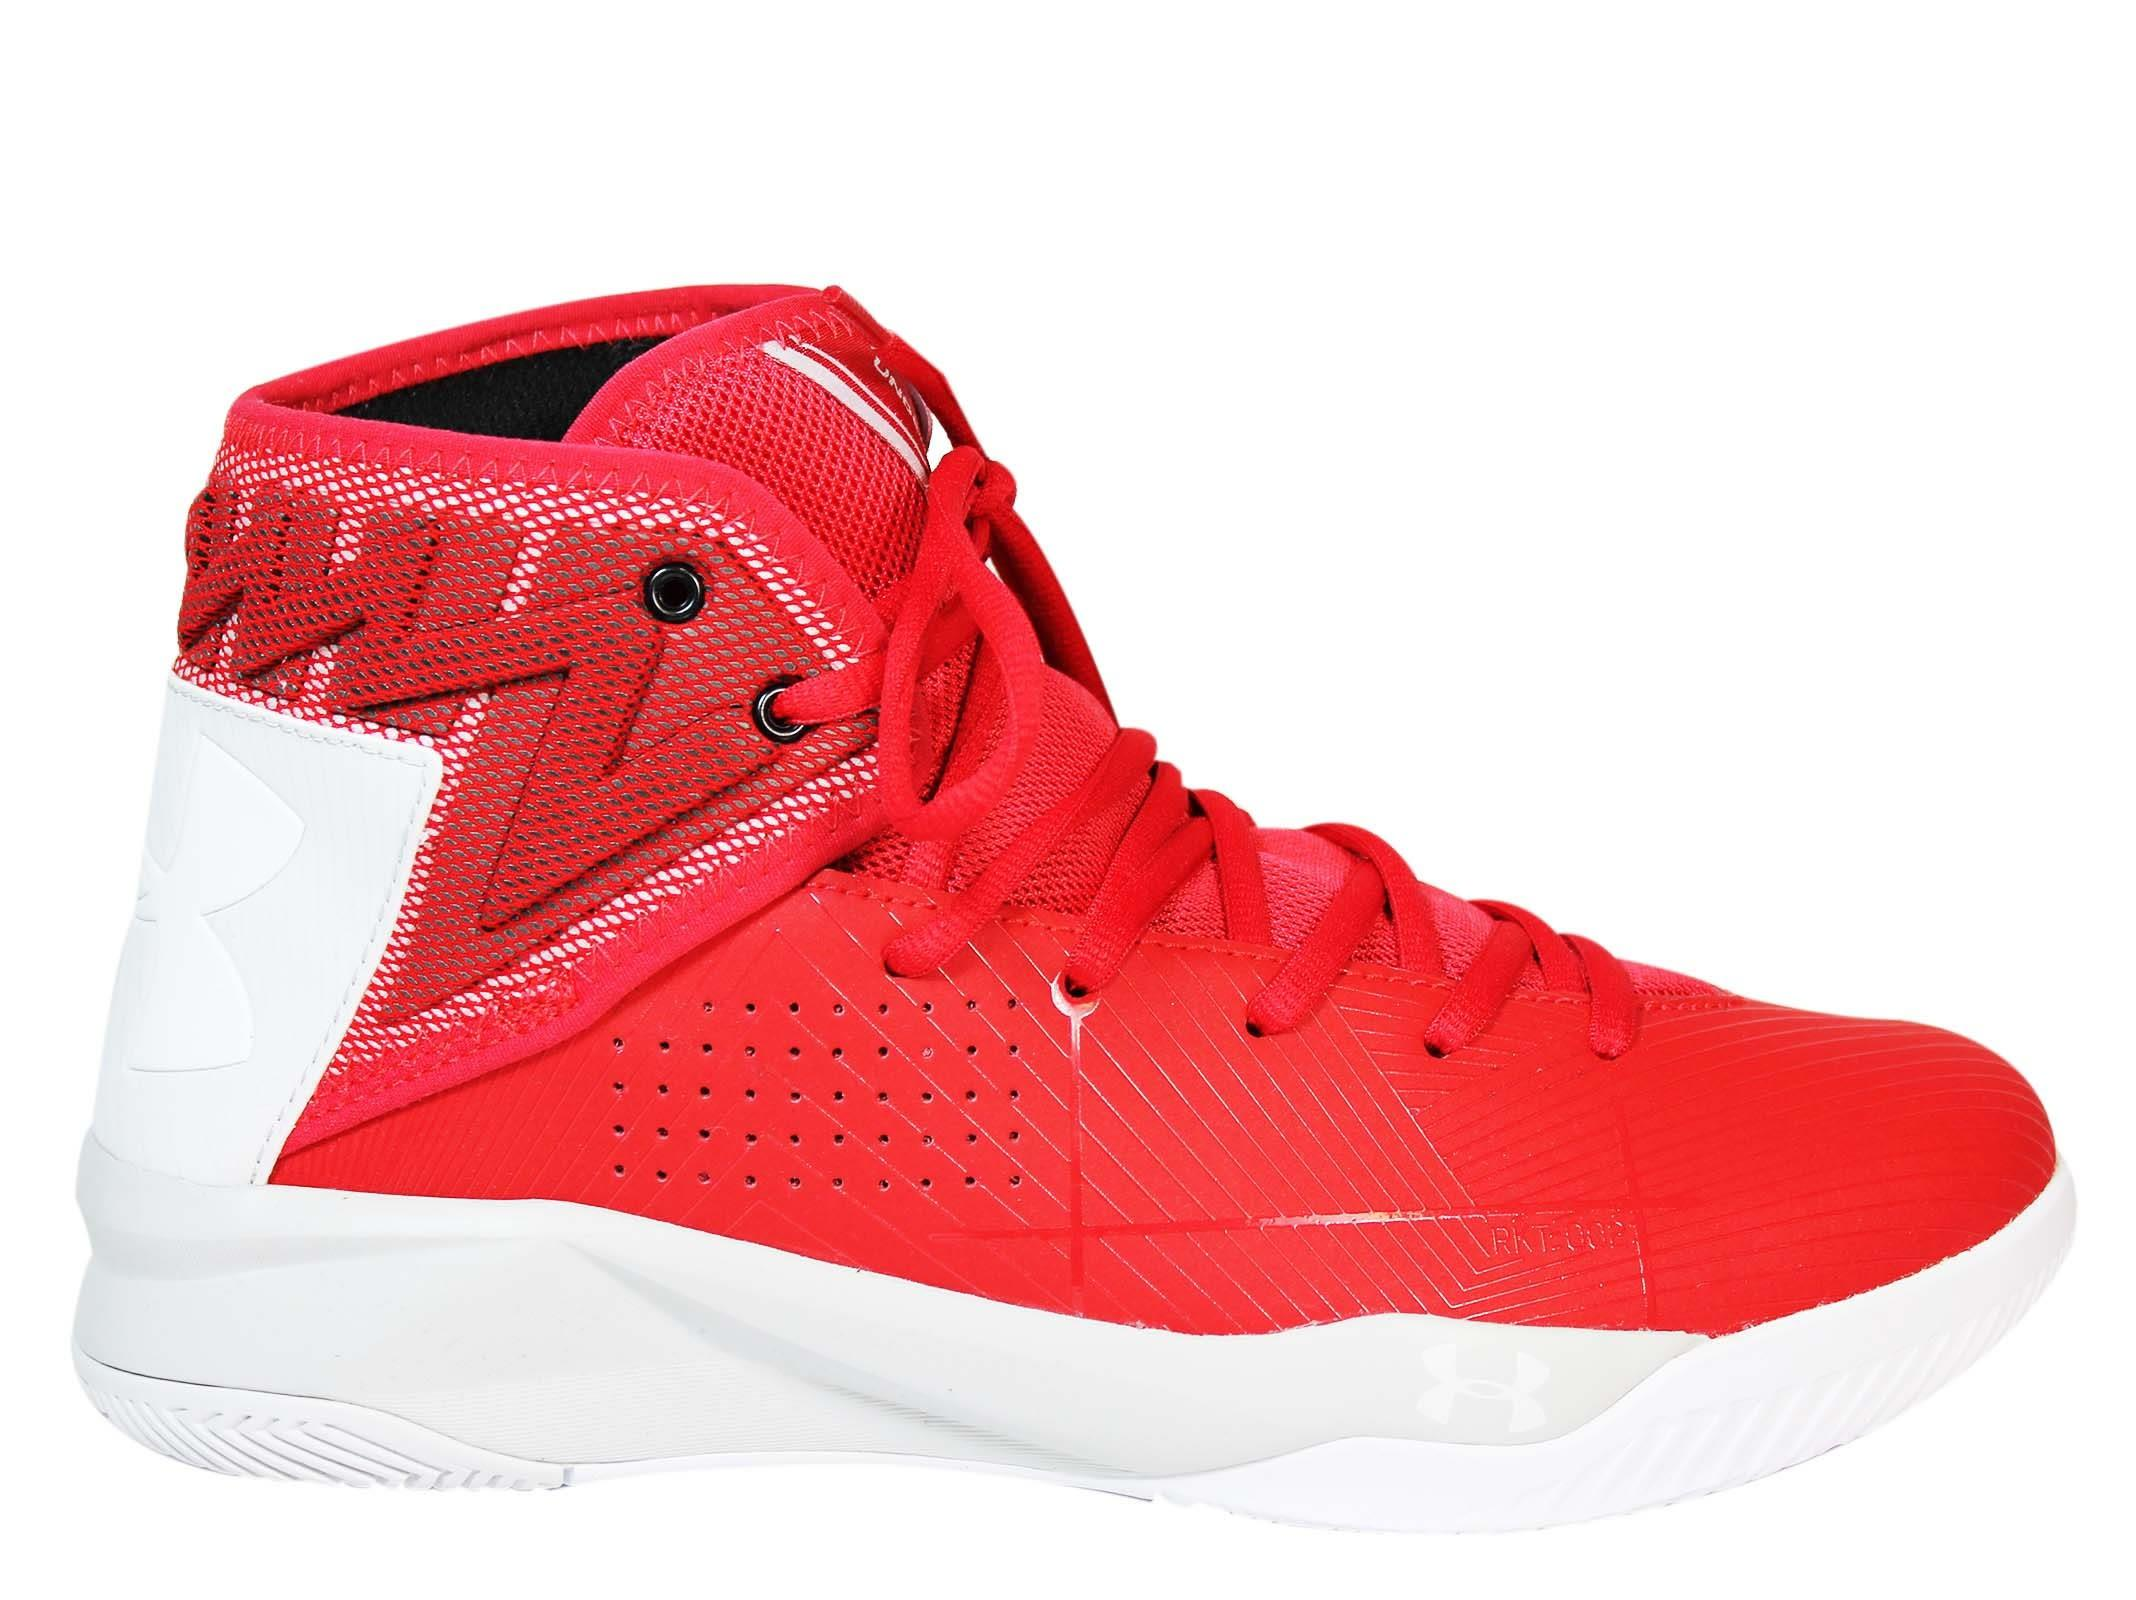 huge discount 127a3 2c1f9 Red Rocket 2 Hi-Top Sneakers